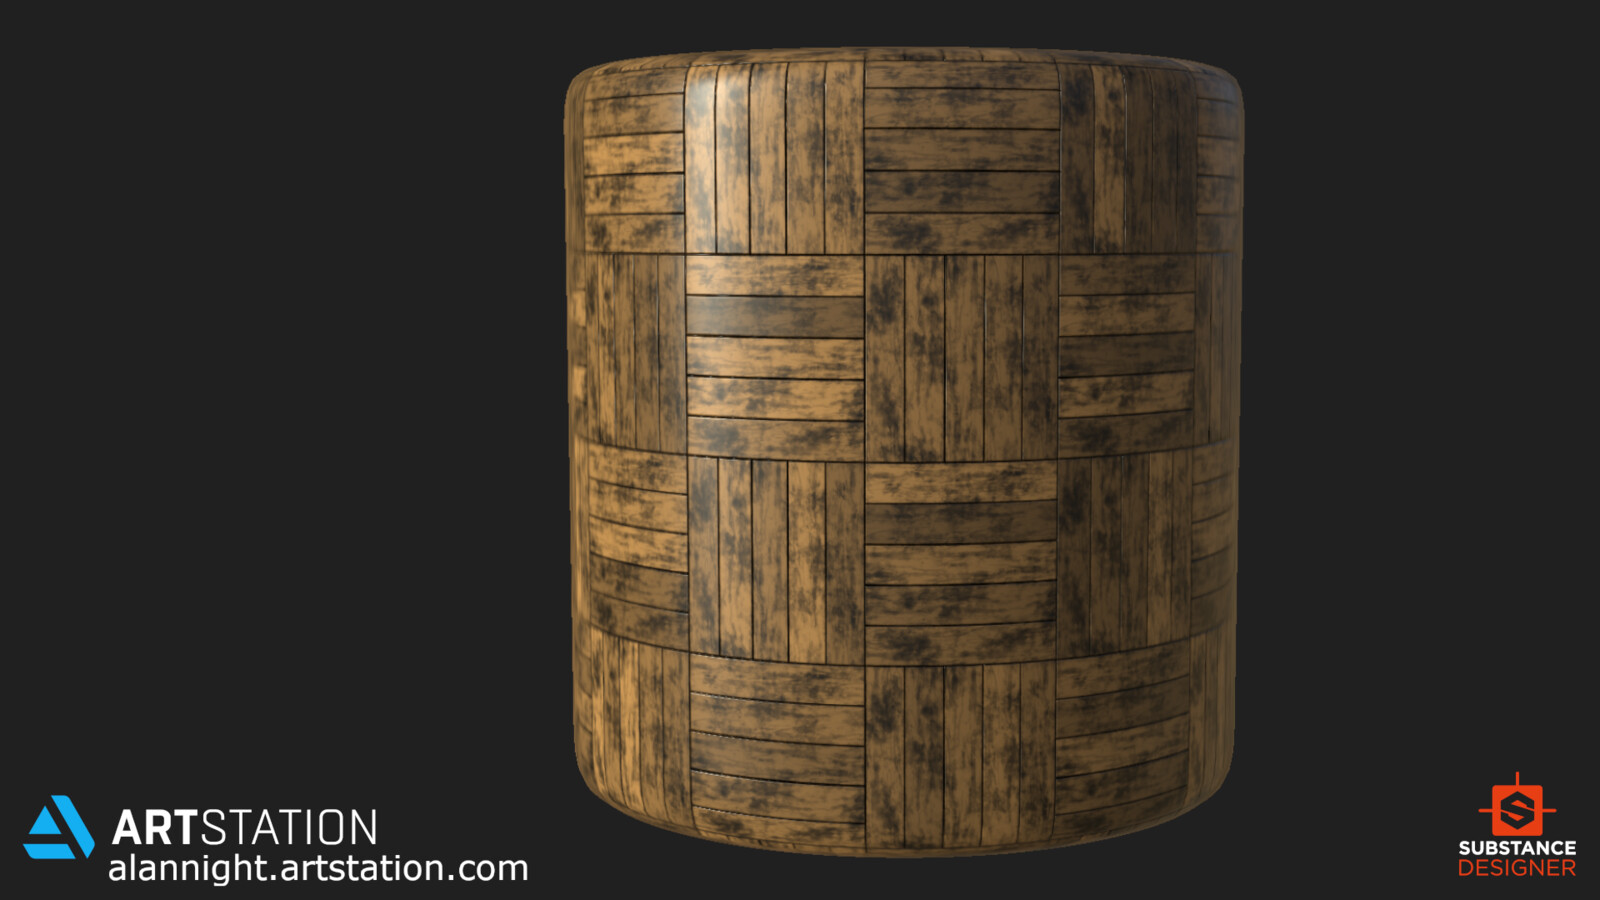 Cylinder Render in Substance Designer